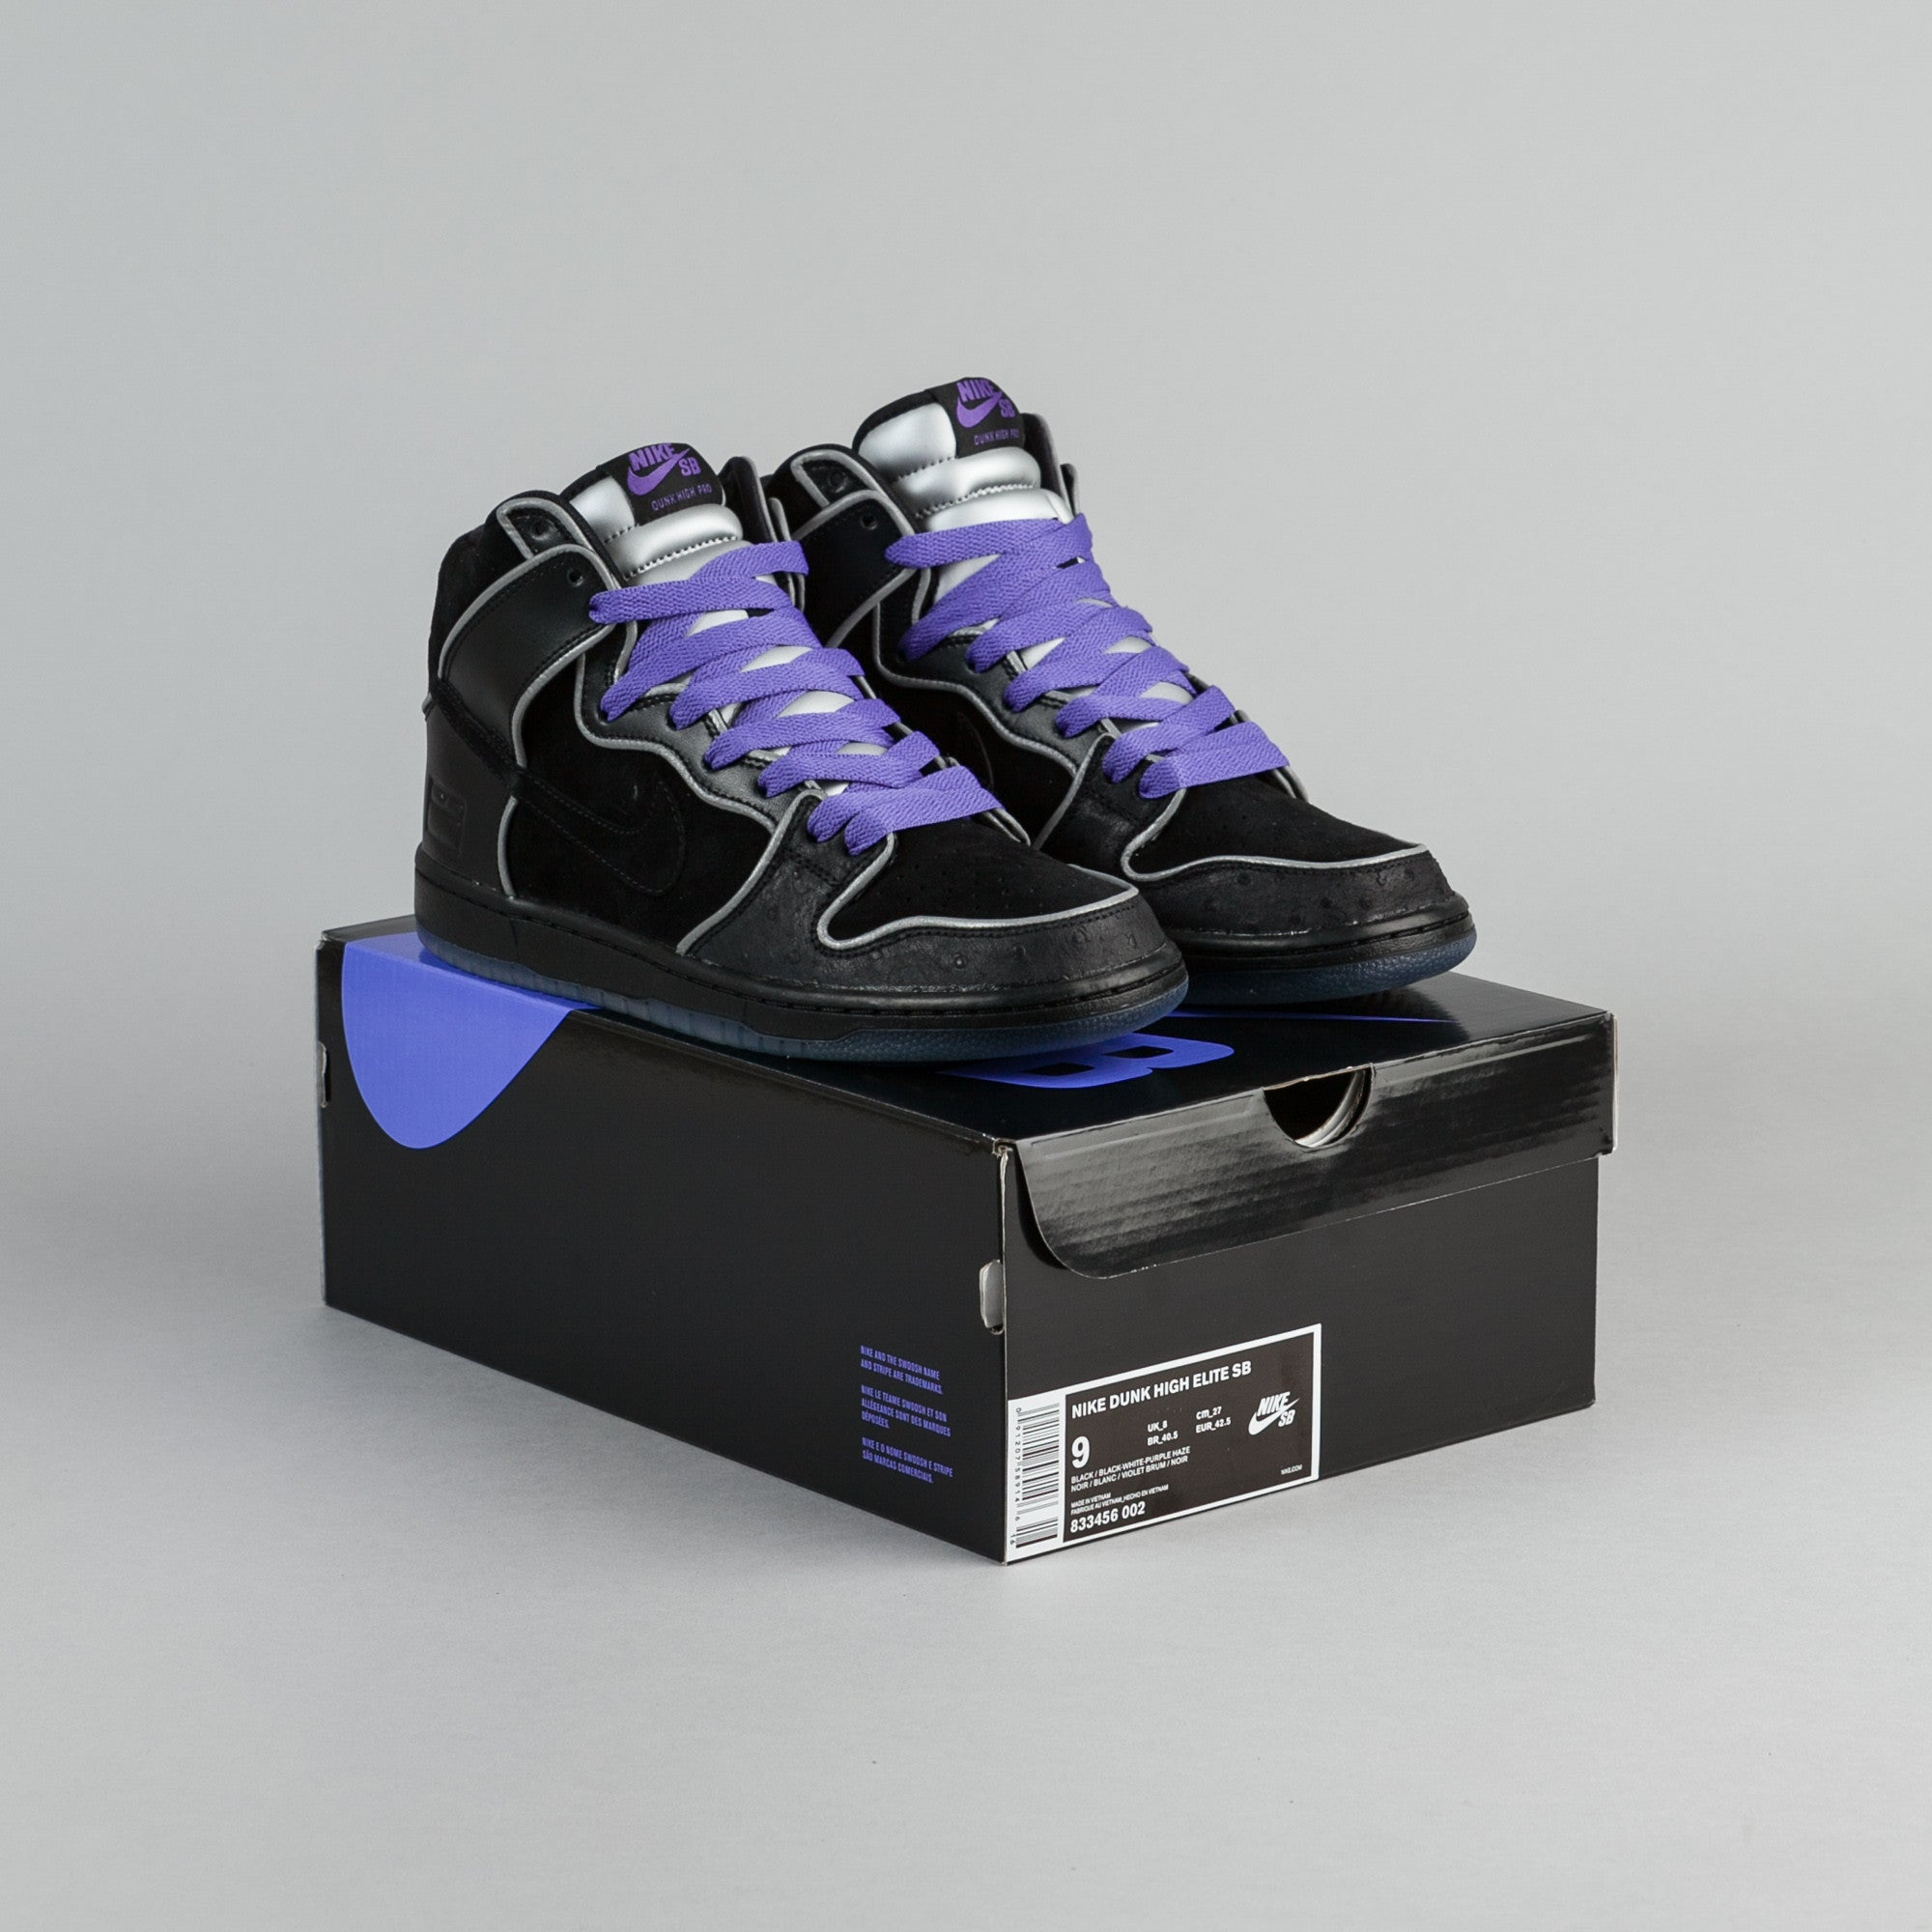 ... Nike SB Dunk High Elite Shoes - Black   Black - White - Purple Haze ... 5716bd10f7